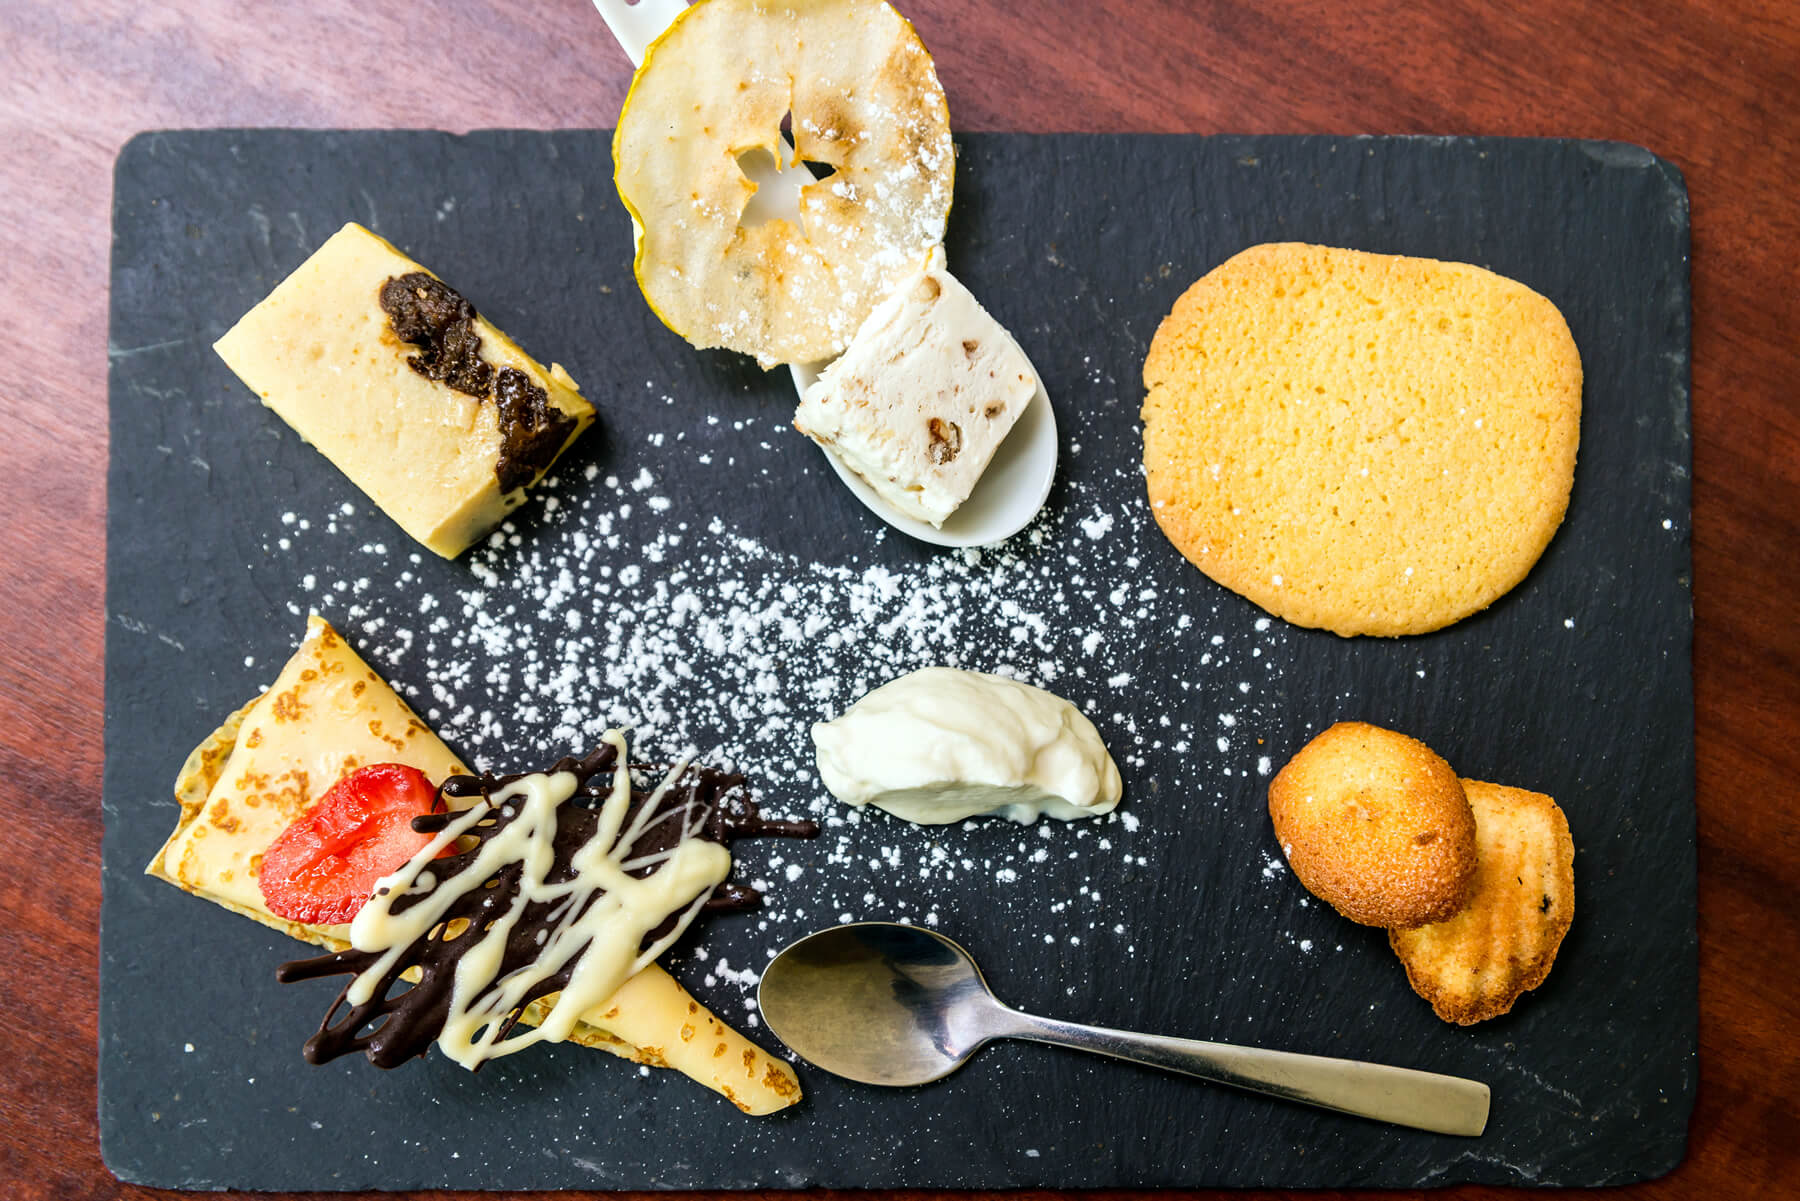 The dessert slate from Cesson Sévigné's restaurant, Le Floréal